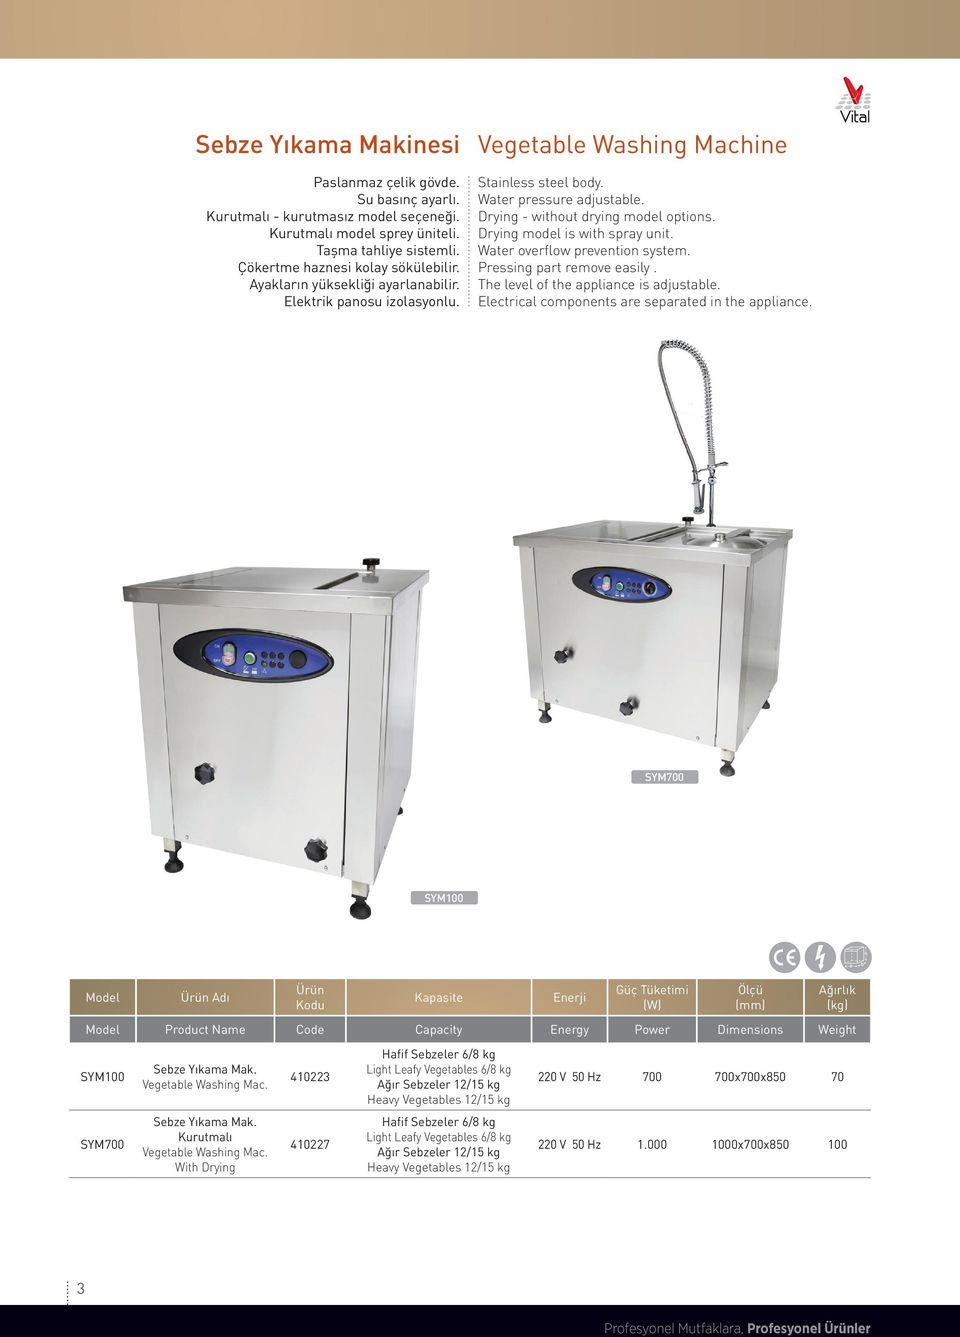 Drying model is with spray unit. Water overflow prevention system. Pressing part remove easily. The level of the appliance is adjustable. Electrical components are separated in the appliance.